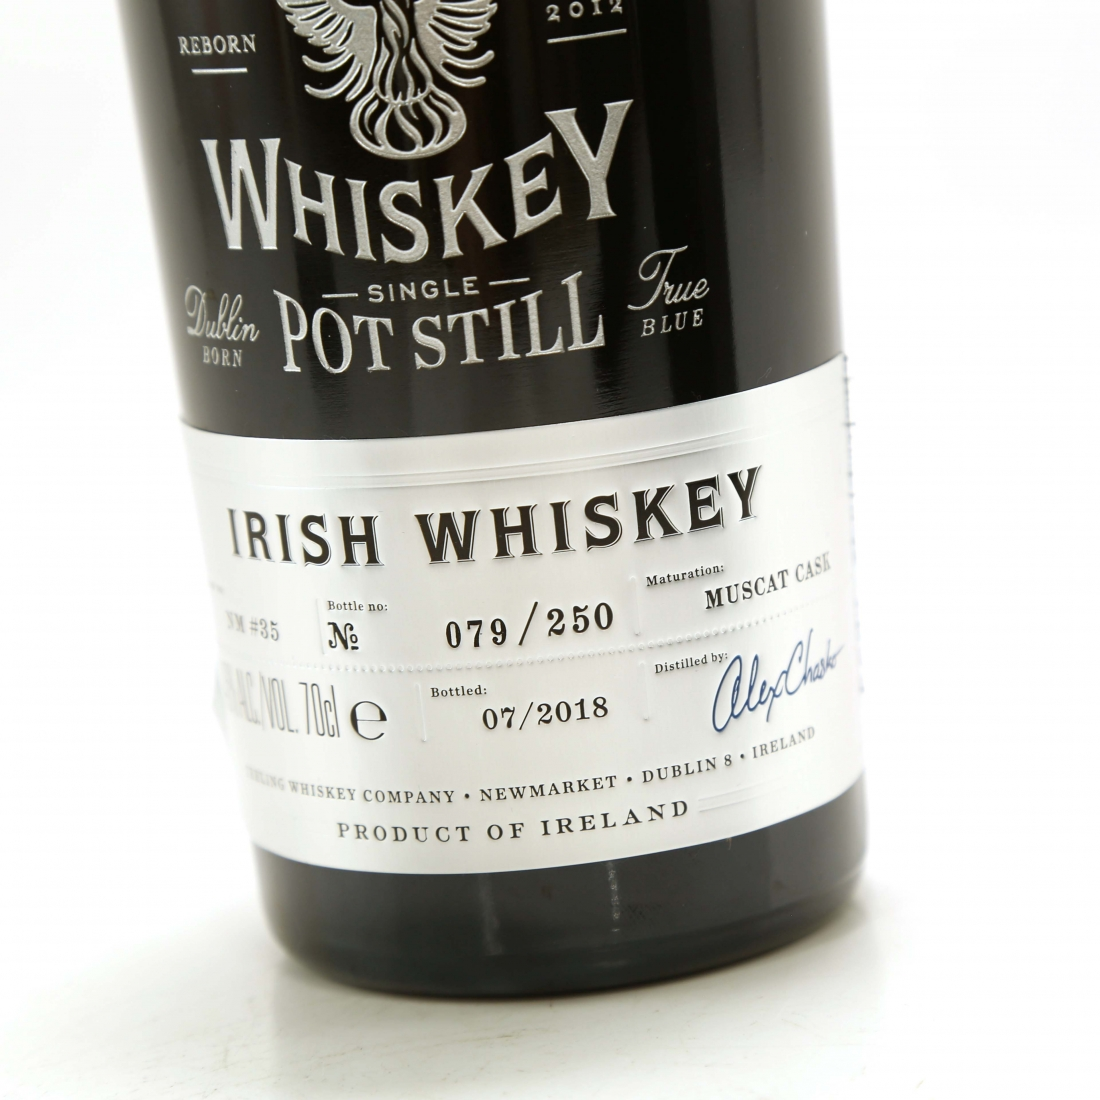 Teeling Celebratory Single Pot Still Whiskey / Bottle #079